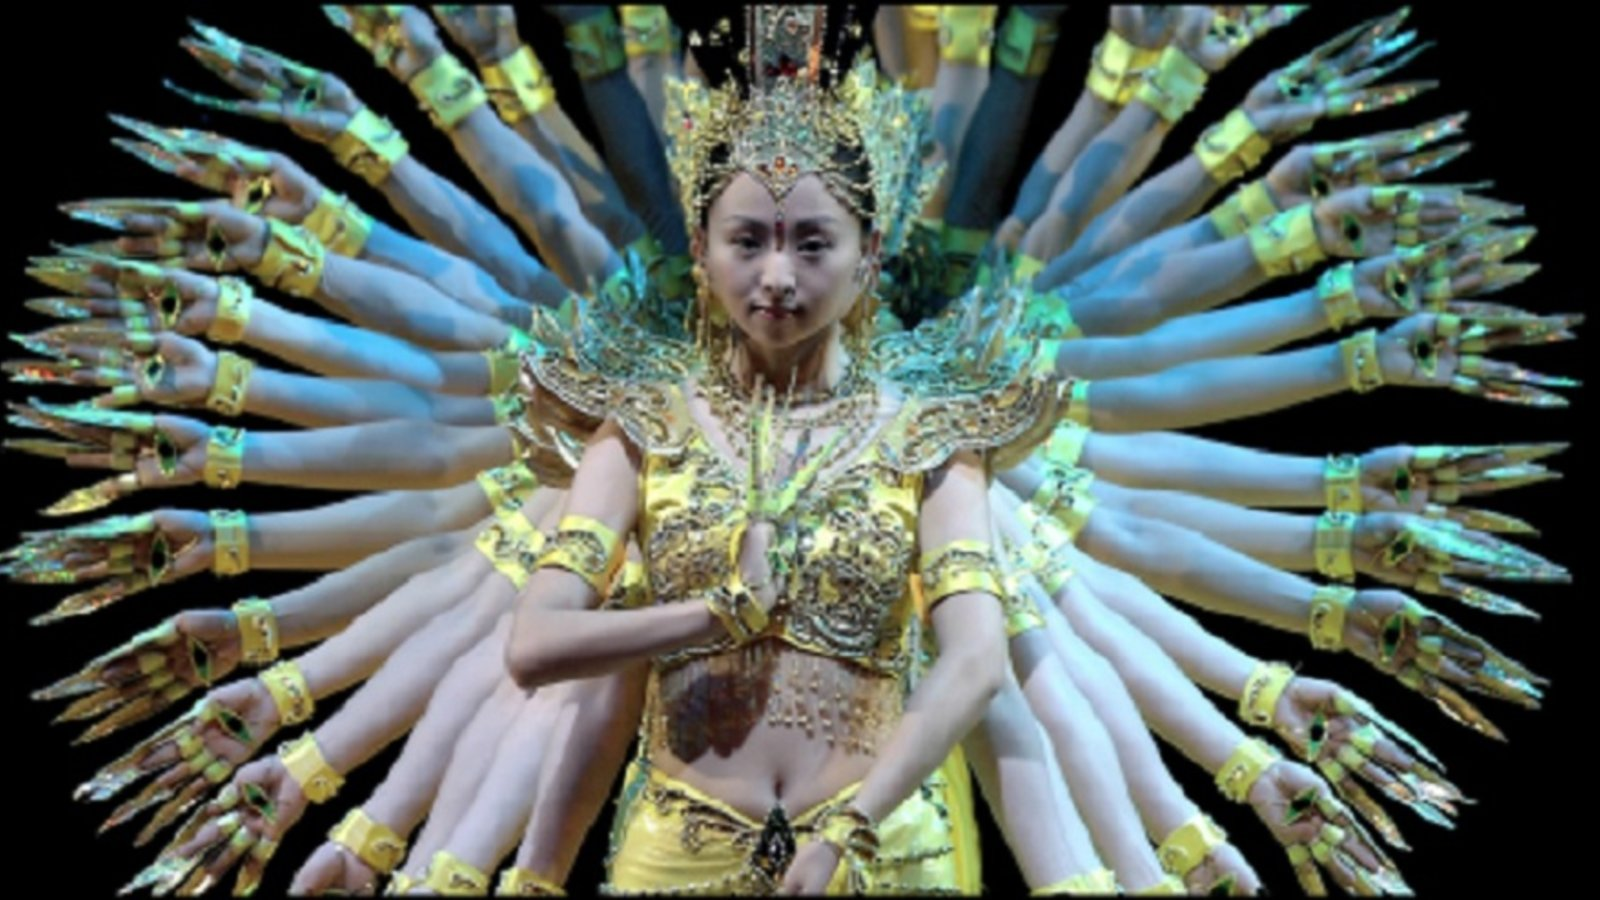 Heritage of Chinese Culture and Dance